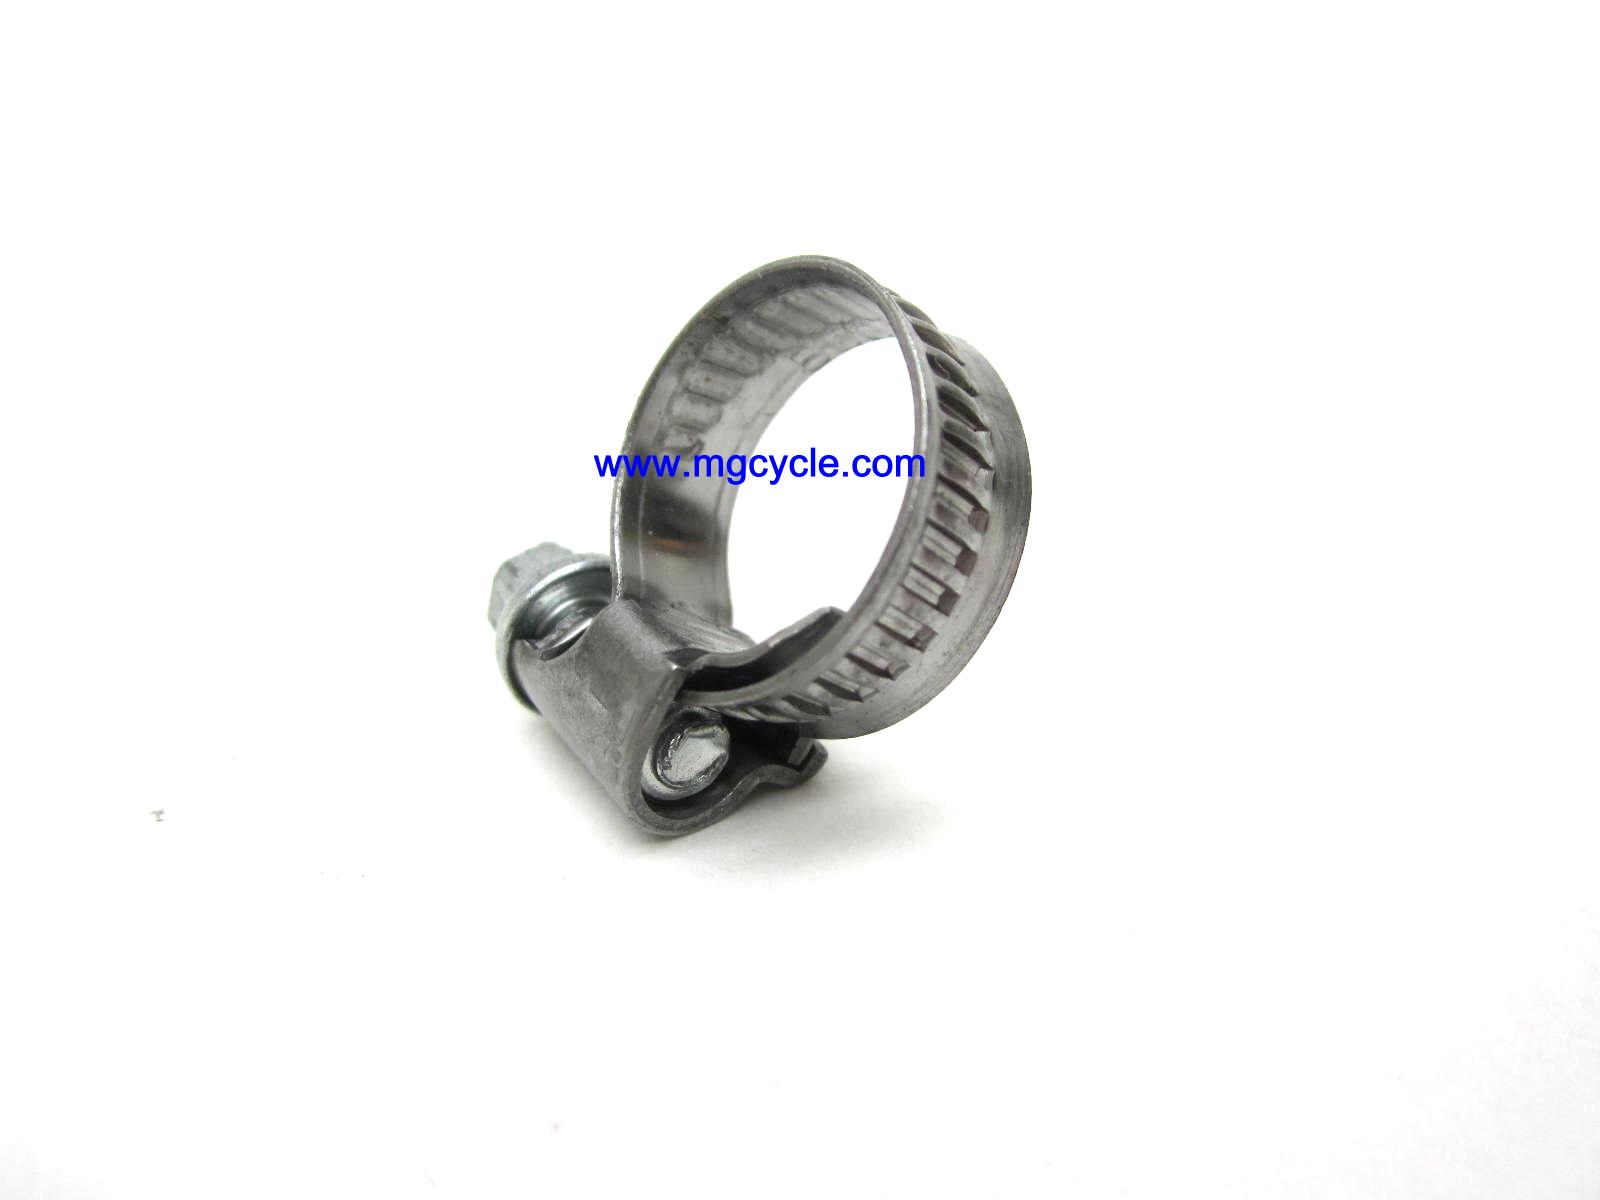 better hose clamp for 10 - 16 mm OD hose, 6mm wide